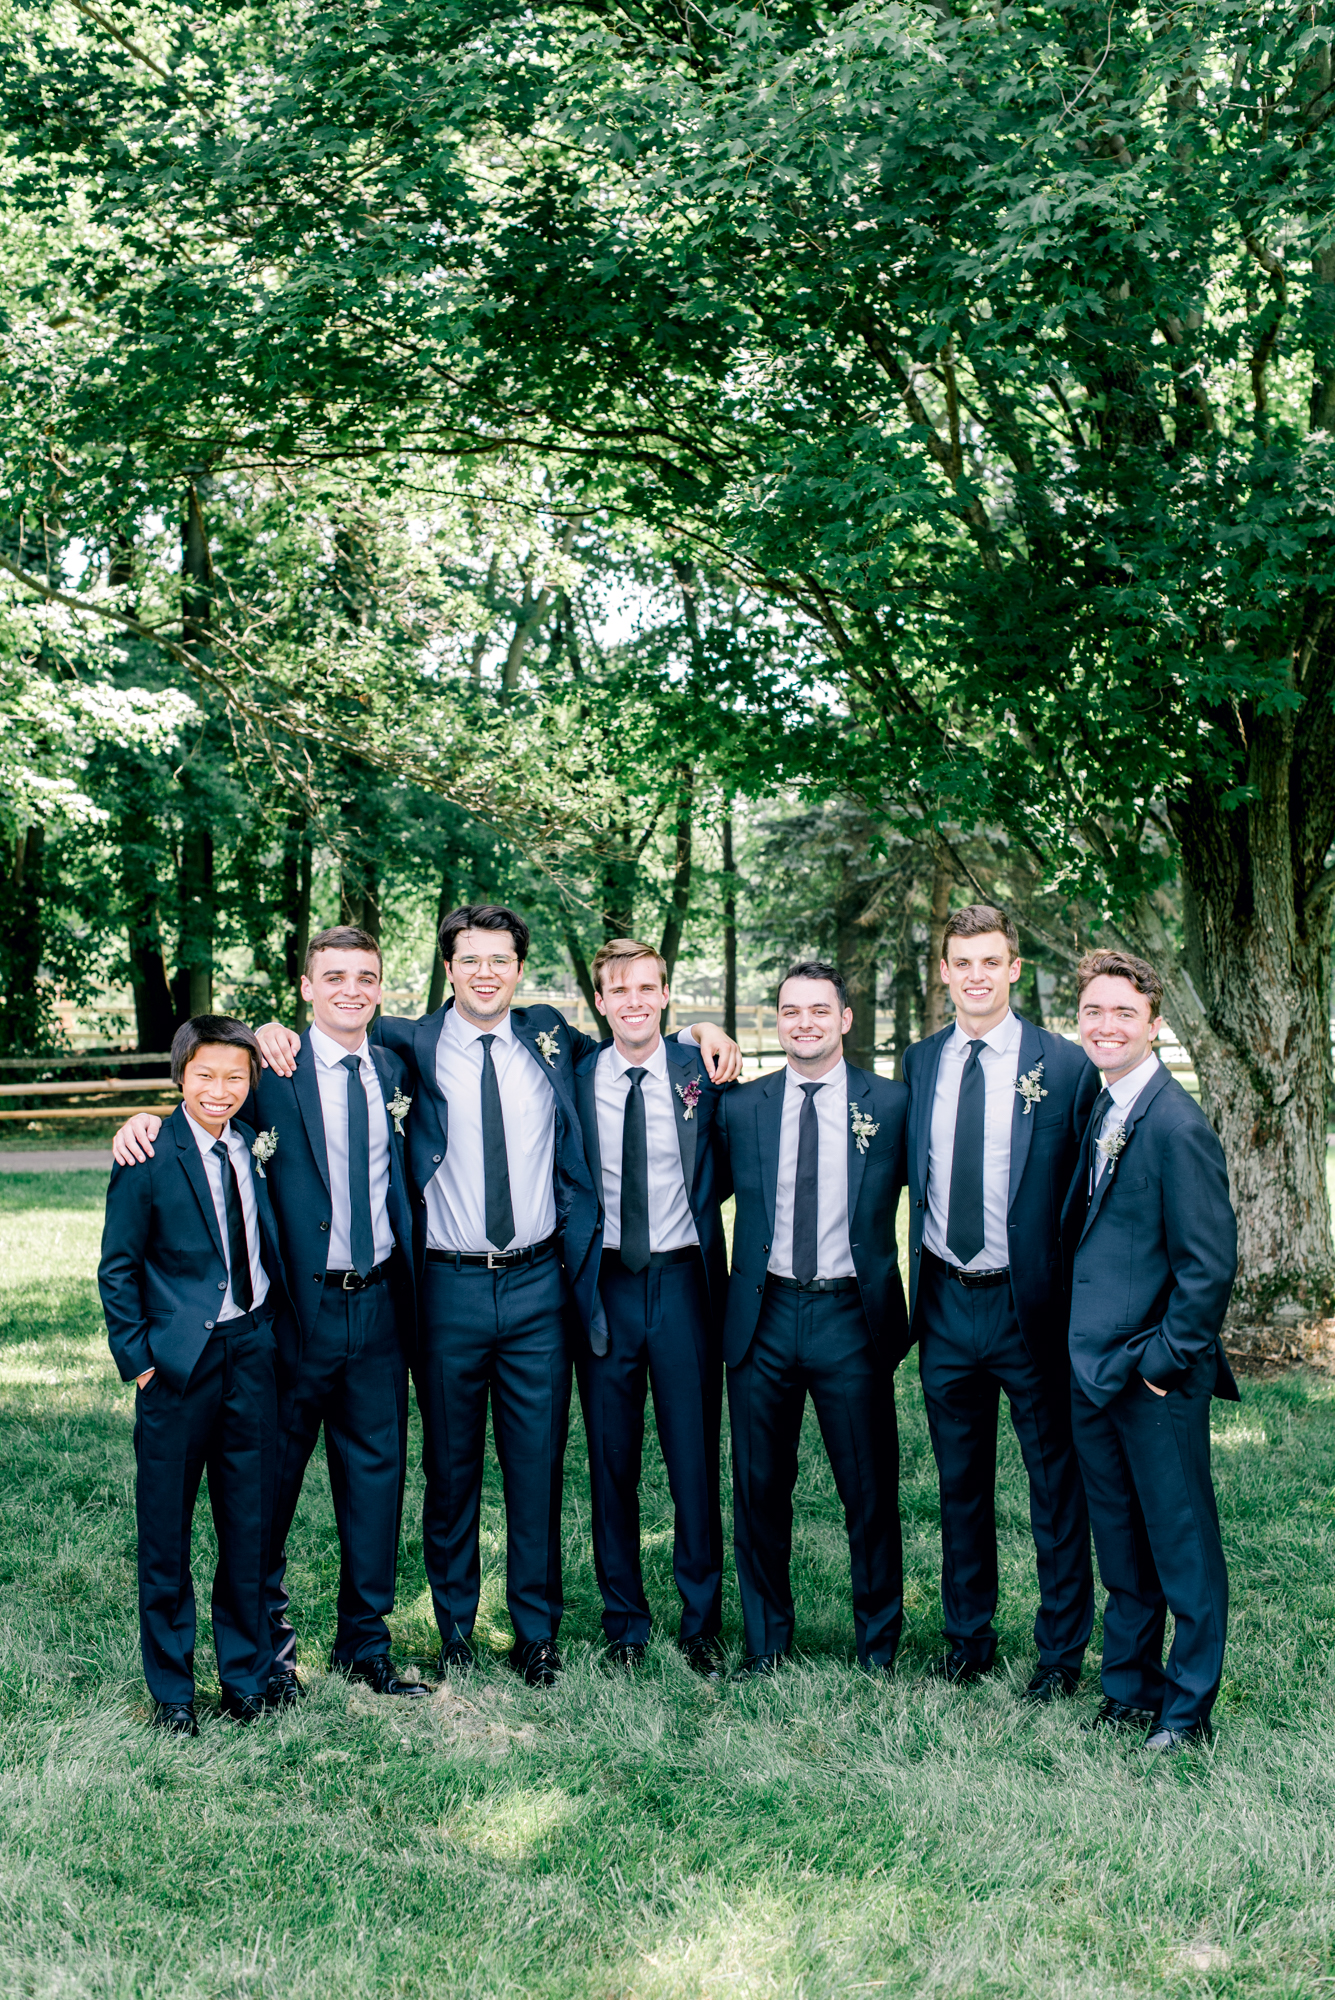 Groom and groomsmen in navy suits with navy ties